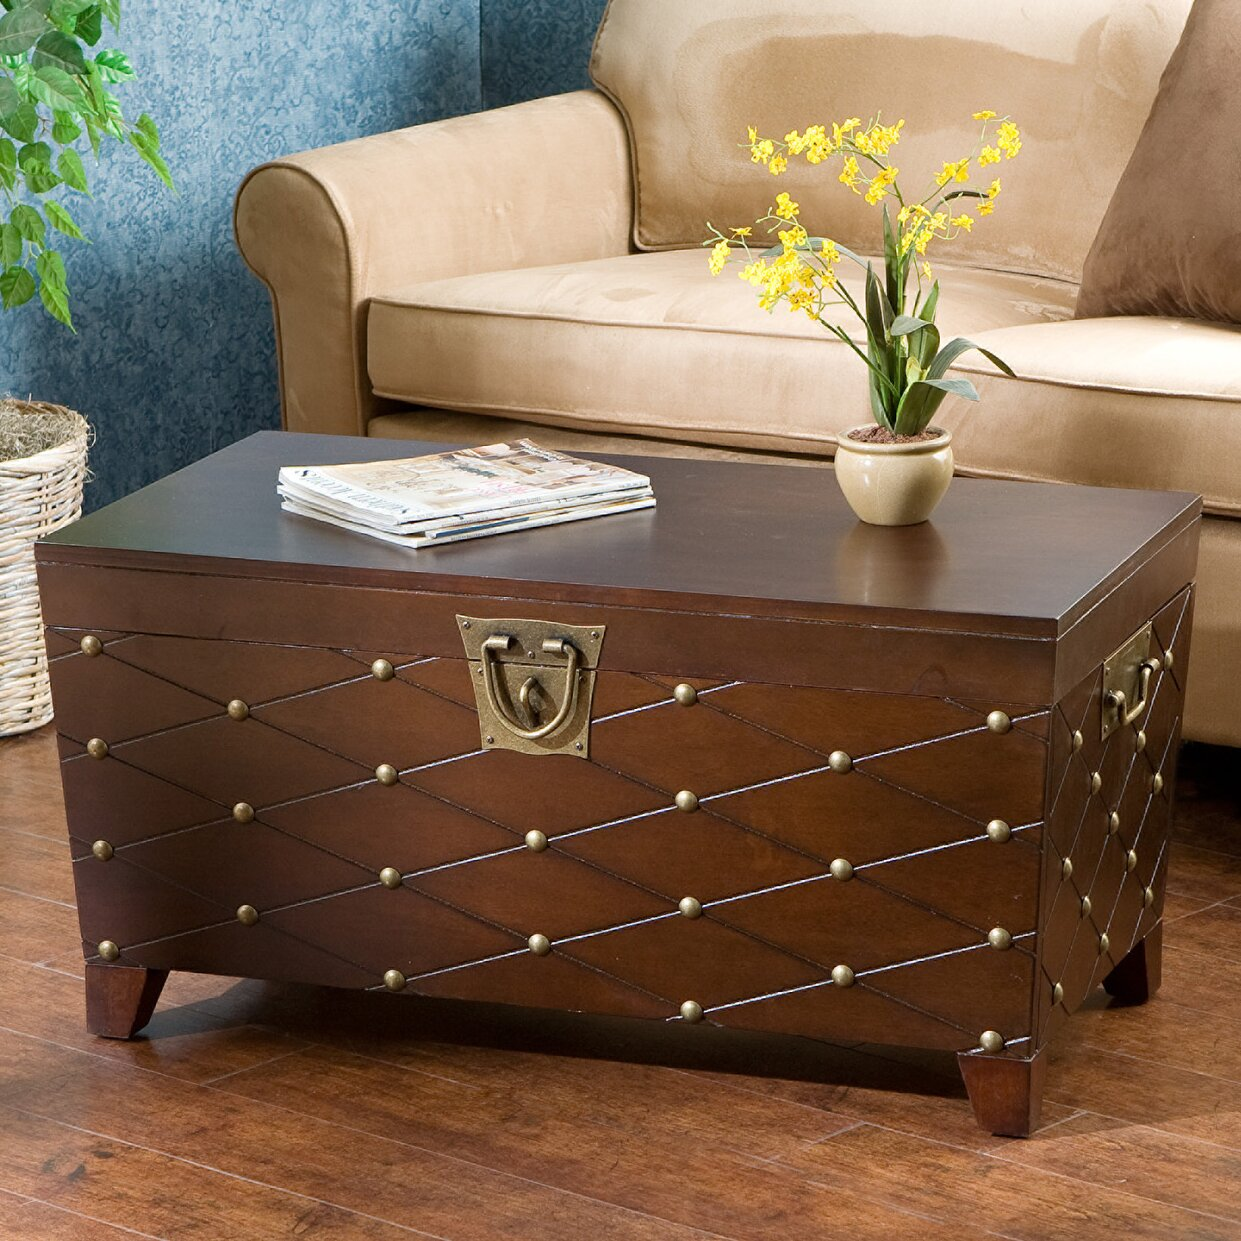 Astoria grand cainhoe nailhead trunk coffee table reviews wayfair Trunks coffee tables